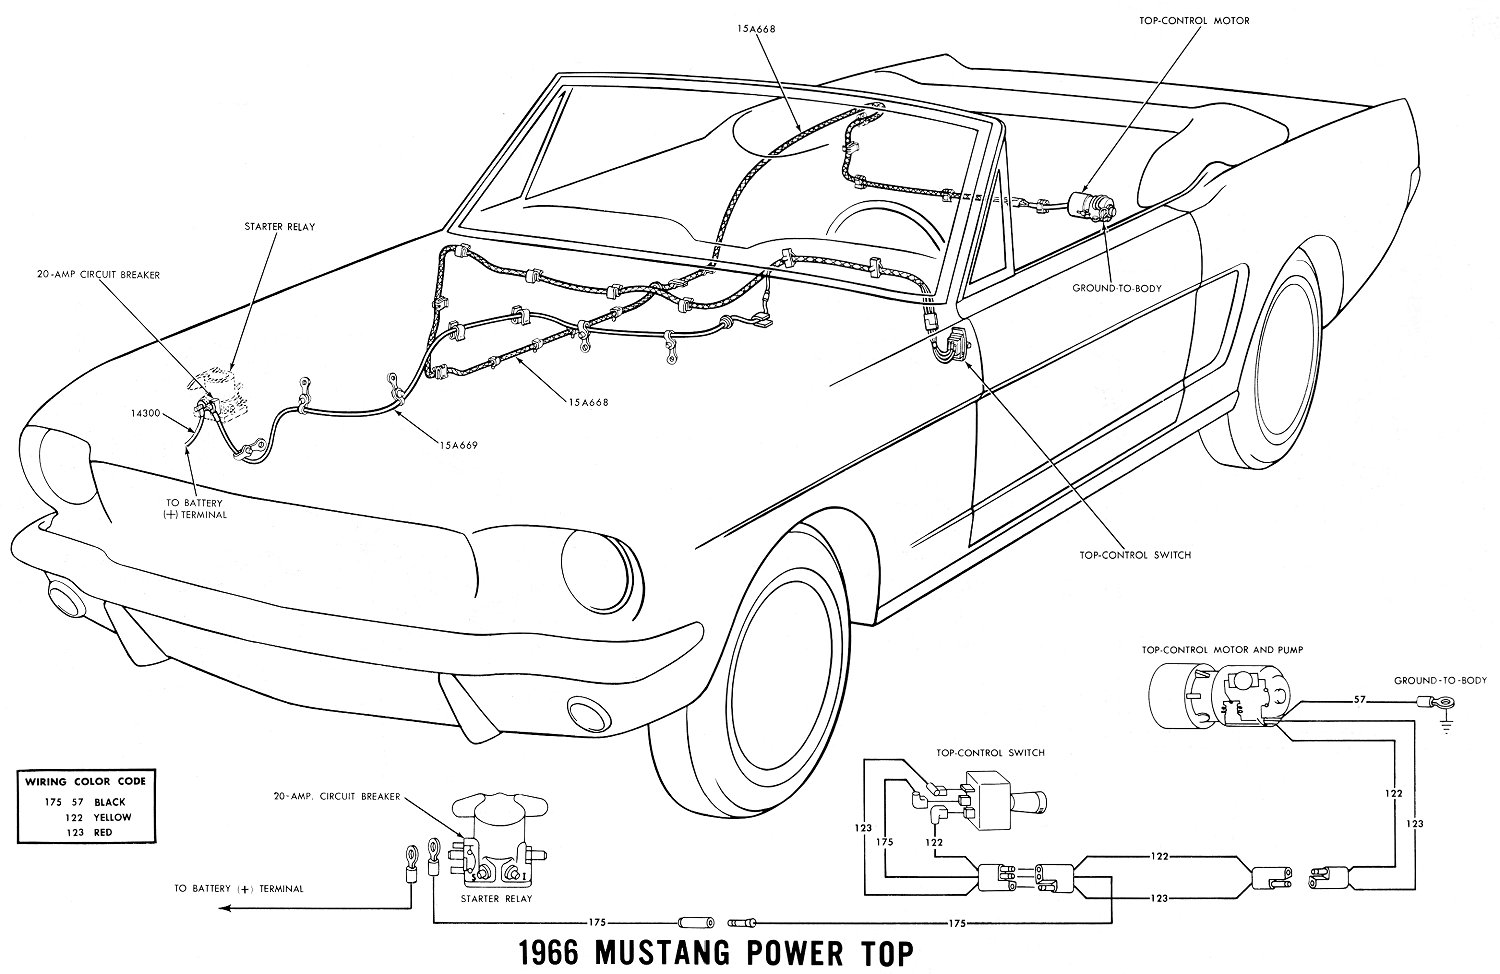 rtop on 1968 mustang wiring diagram